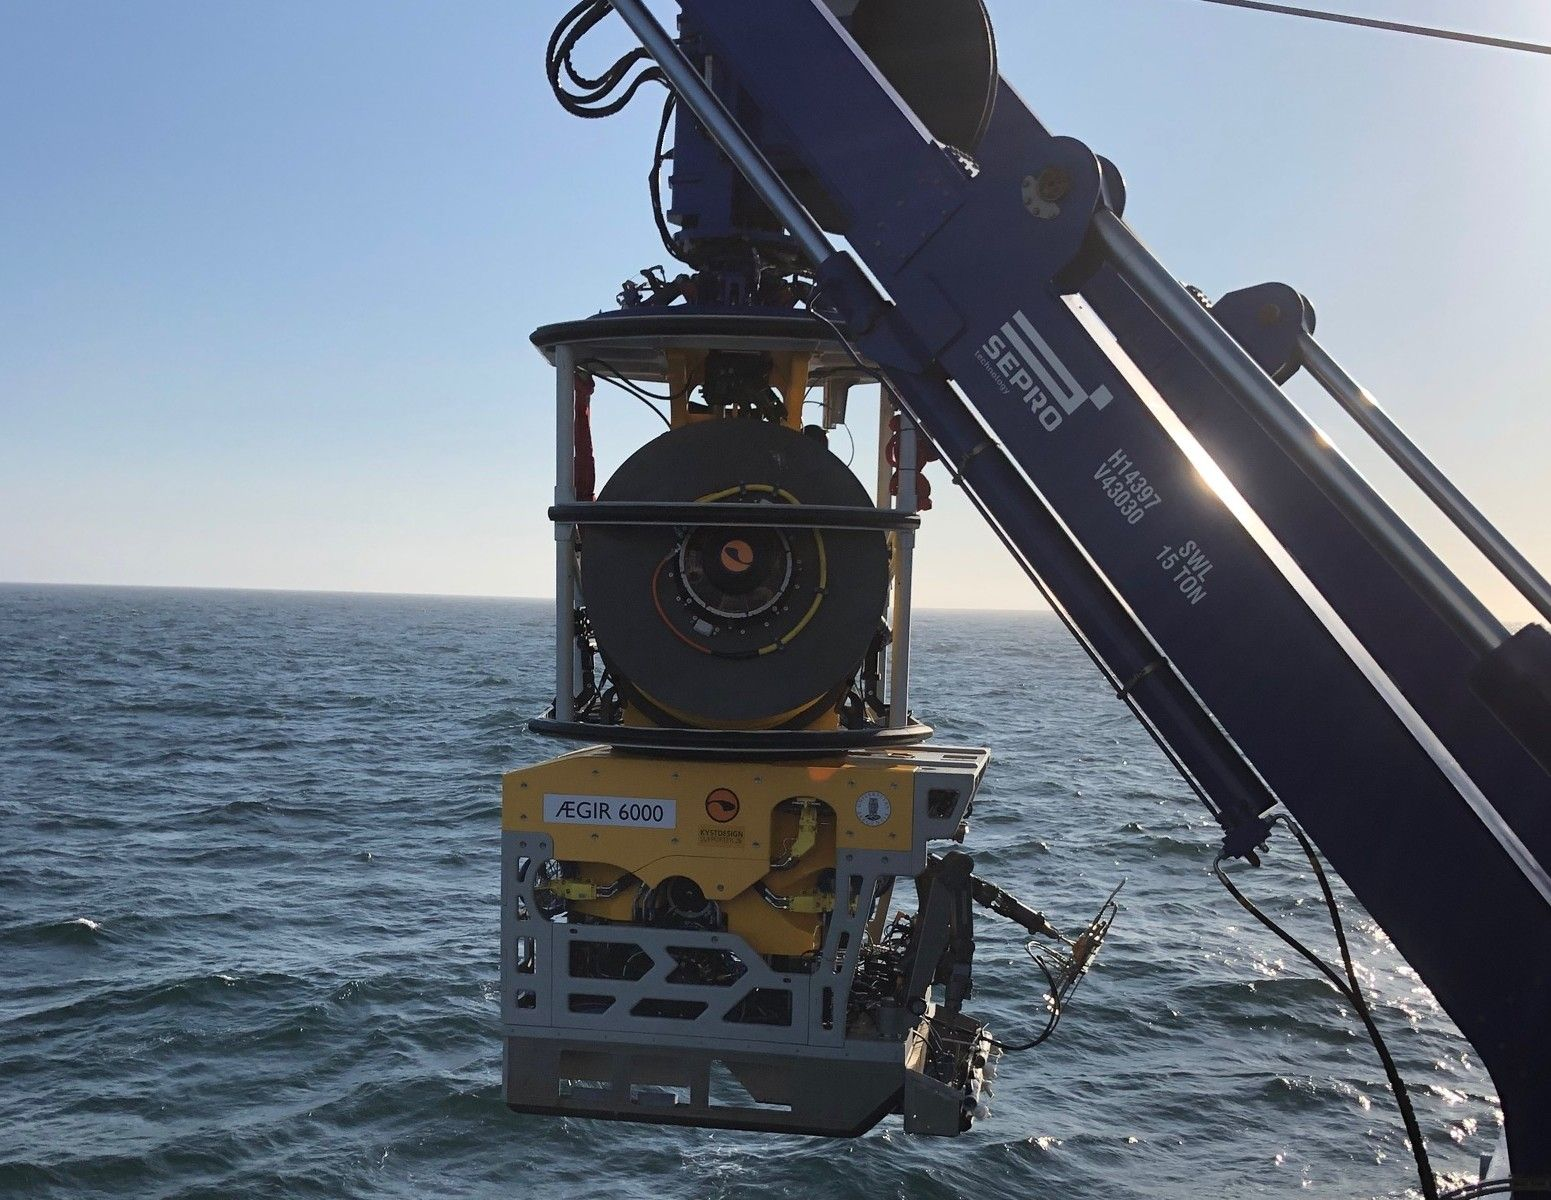 Maritime Research Insititute of Norway